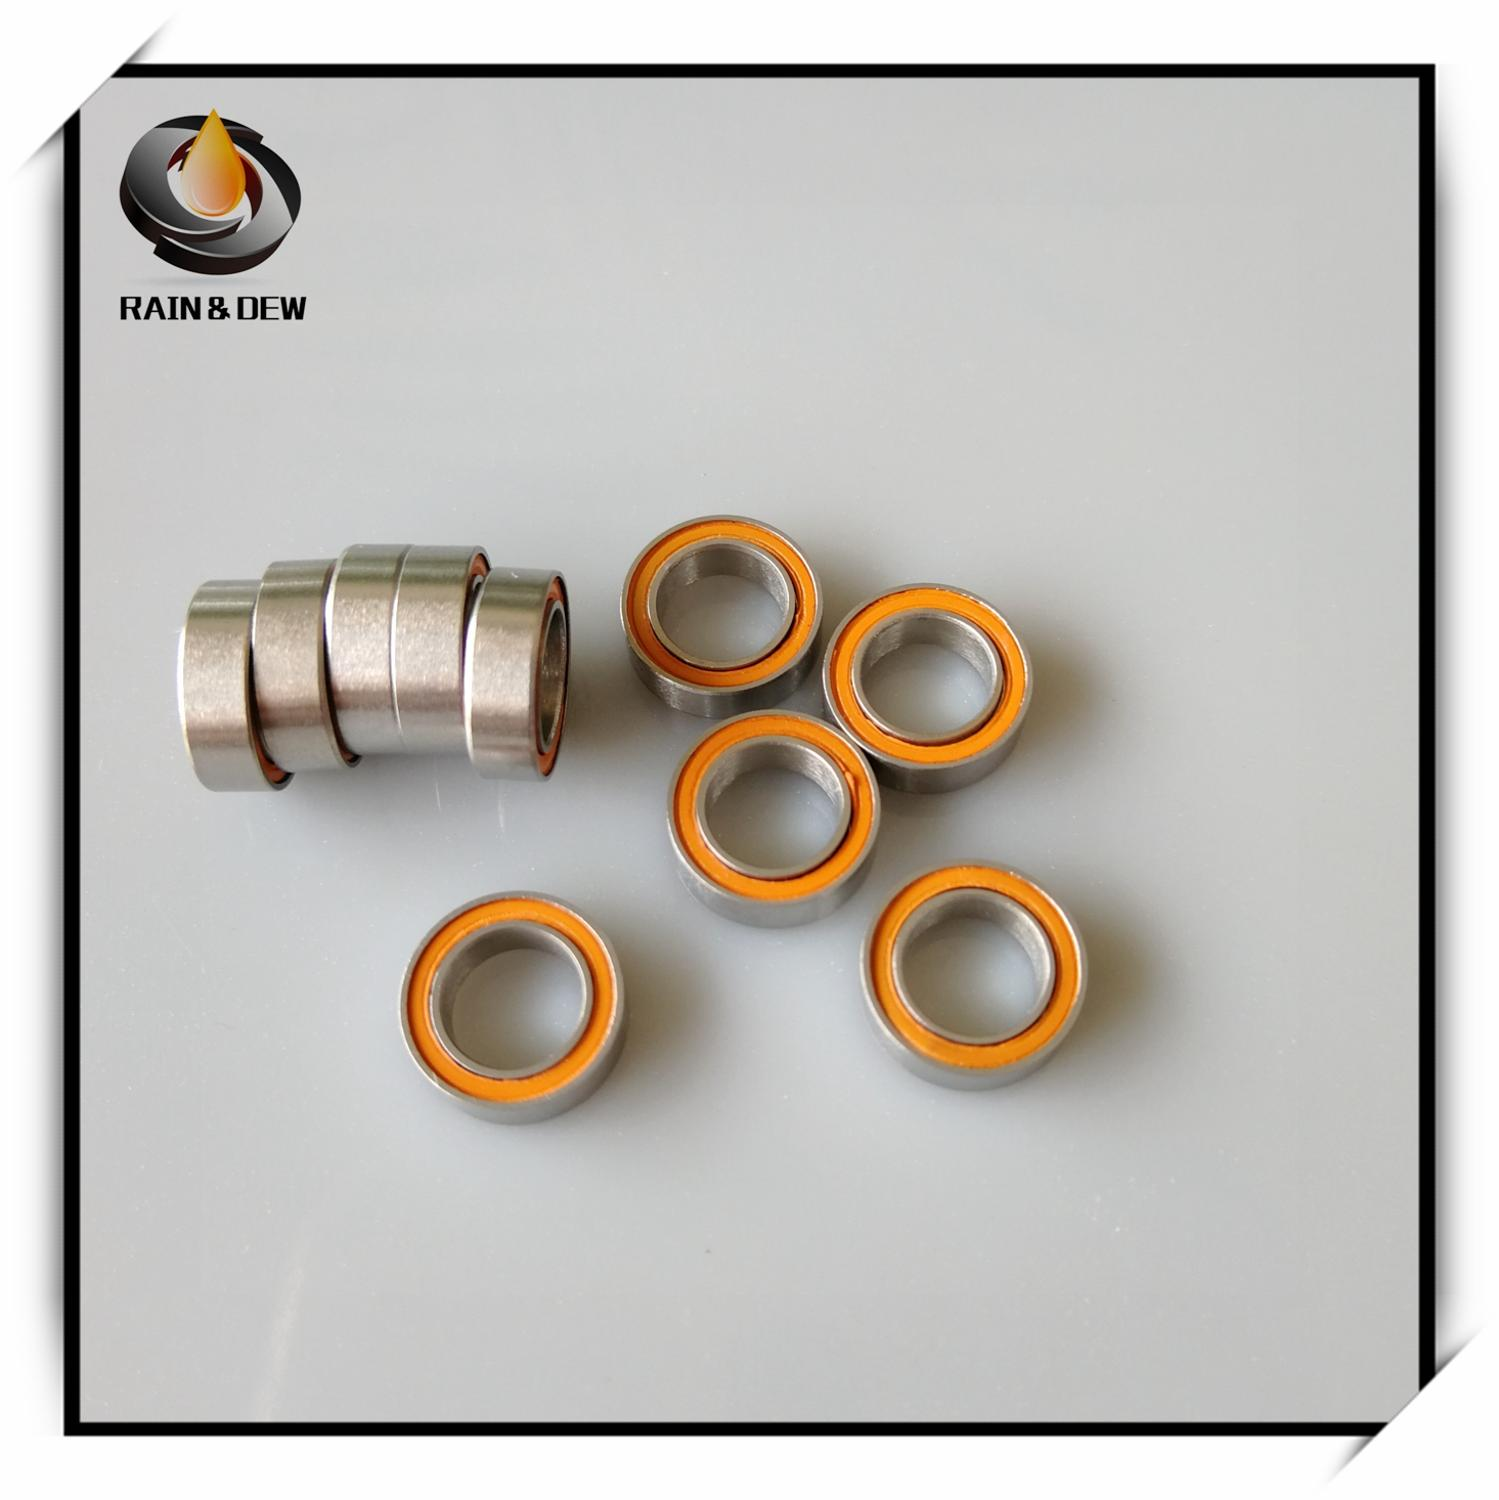 1Pcs  SMR85 2RS CB A7 ABEC 7 Stainless Steel Hybrid Ceramic Bearing  5x8x2.5 Mm Fishing Vessel Bearing 5x8x2.5